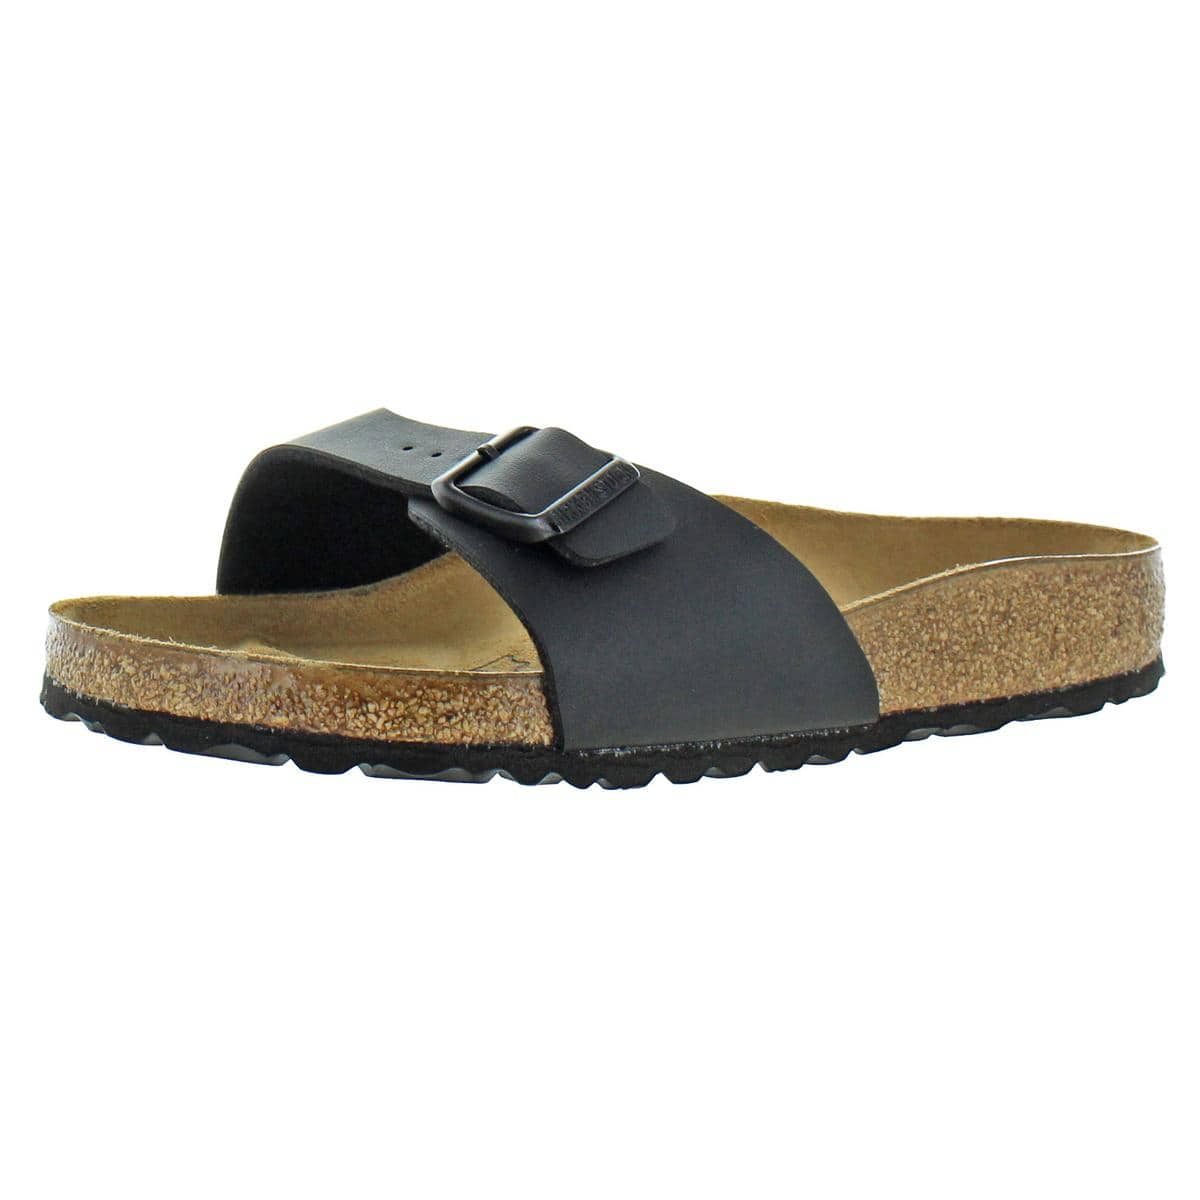 120ab8e7ecce Birkenstock Women s Madrid Sandals (various colors) - Slickdeals.net